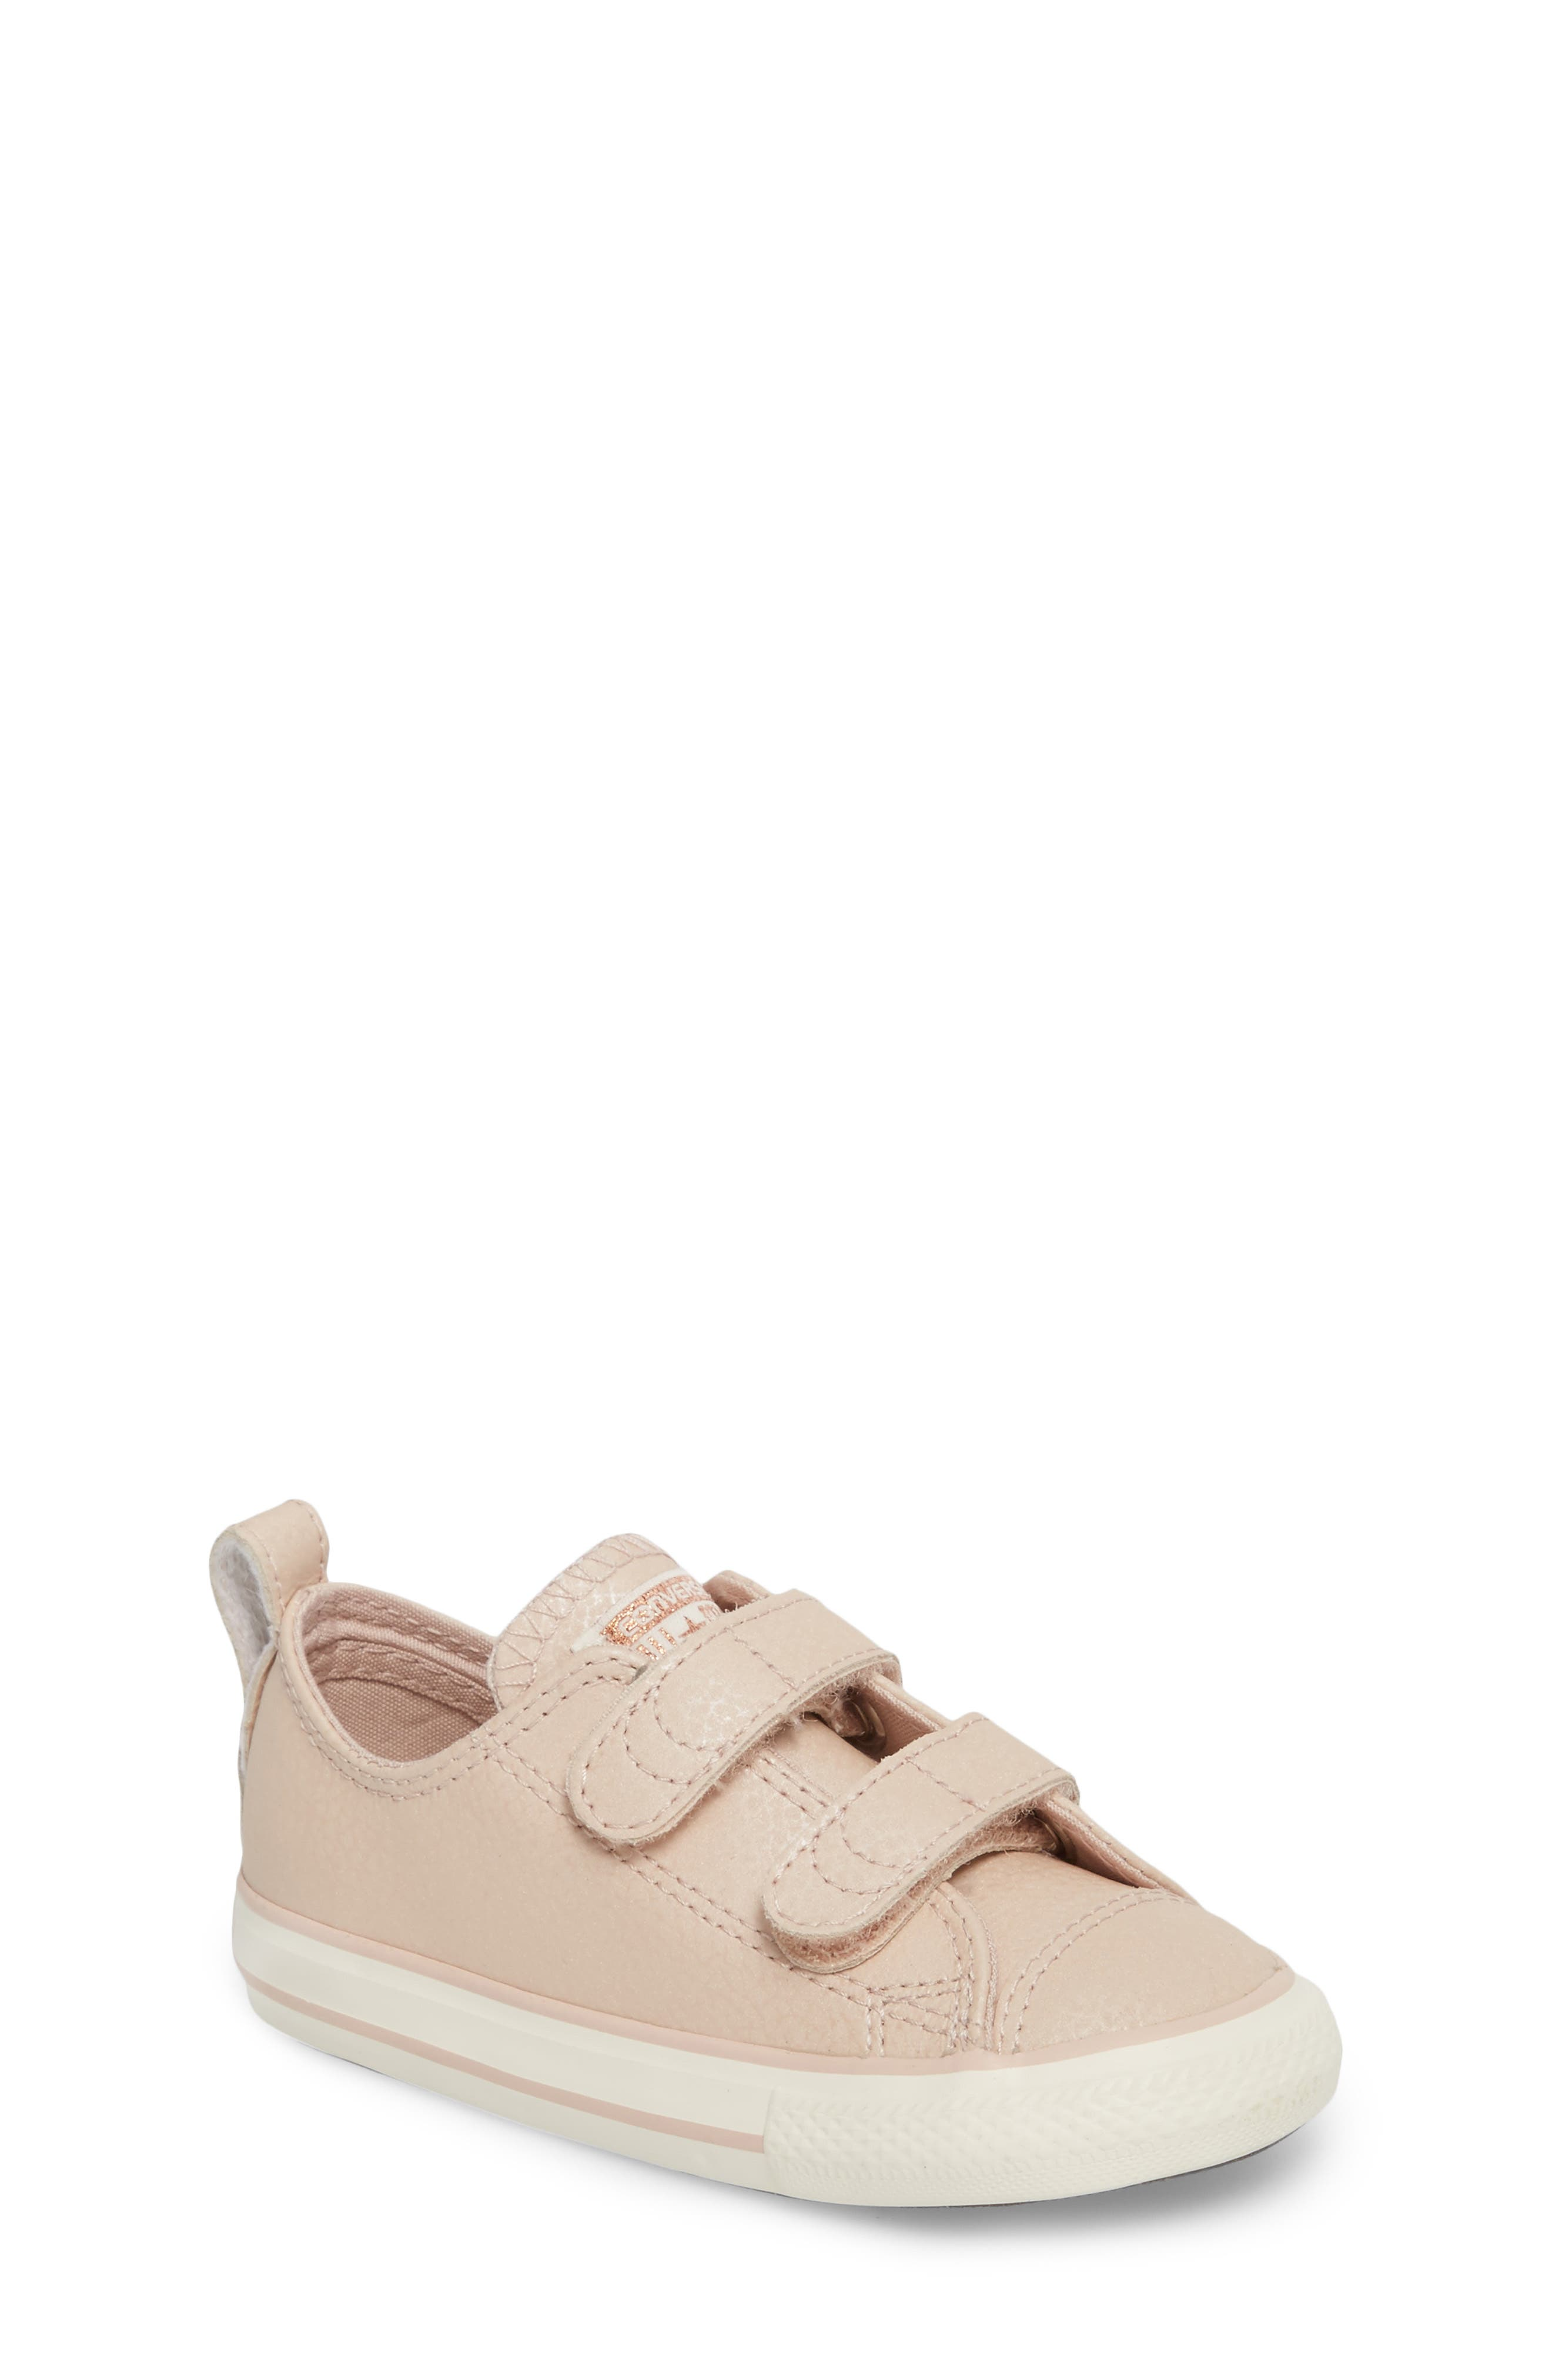 All Star<sup>®</sup> Fashion 2V Low Top Sneaker,                         Main,                         color, Particle Beige